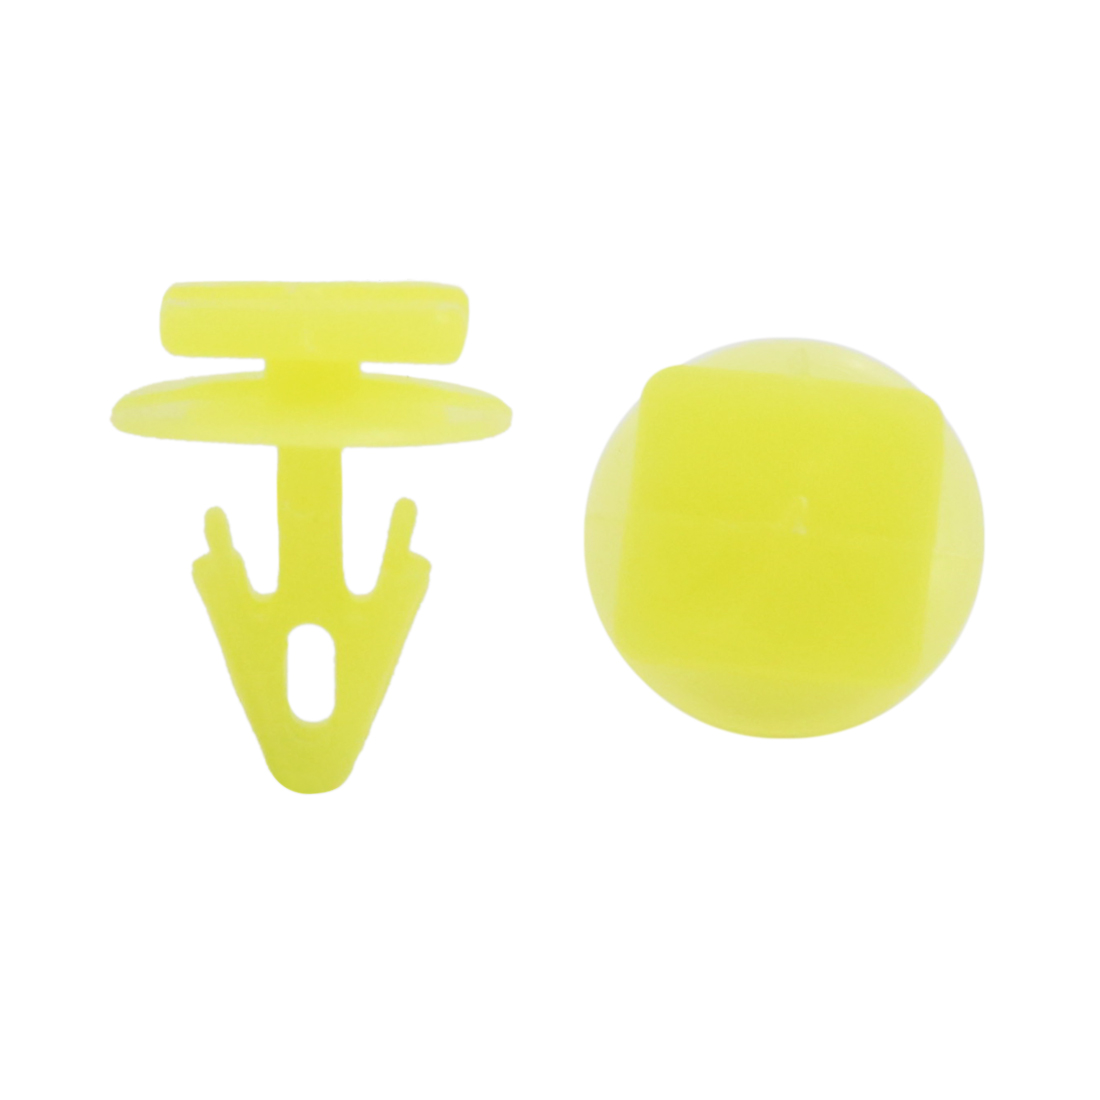 100pcs Yellow Plastic Rivets Interior Moulding Clips Fender Fastener 9mm for Car